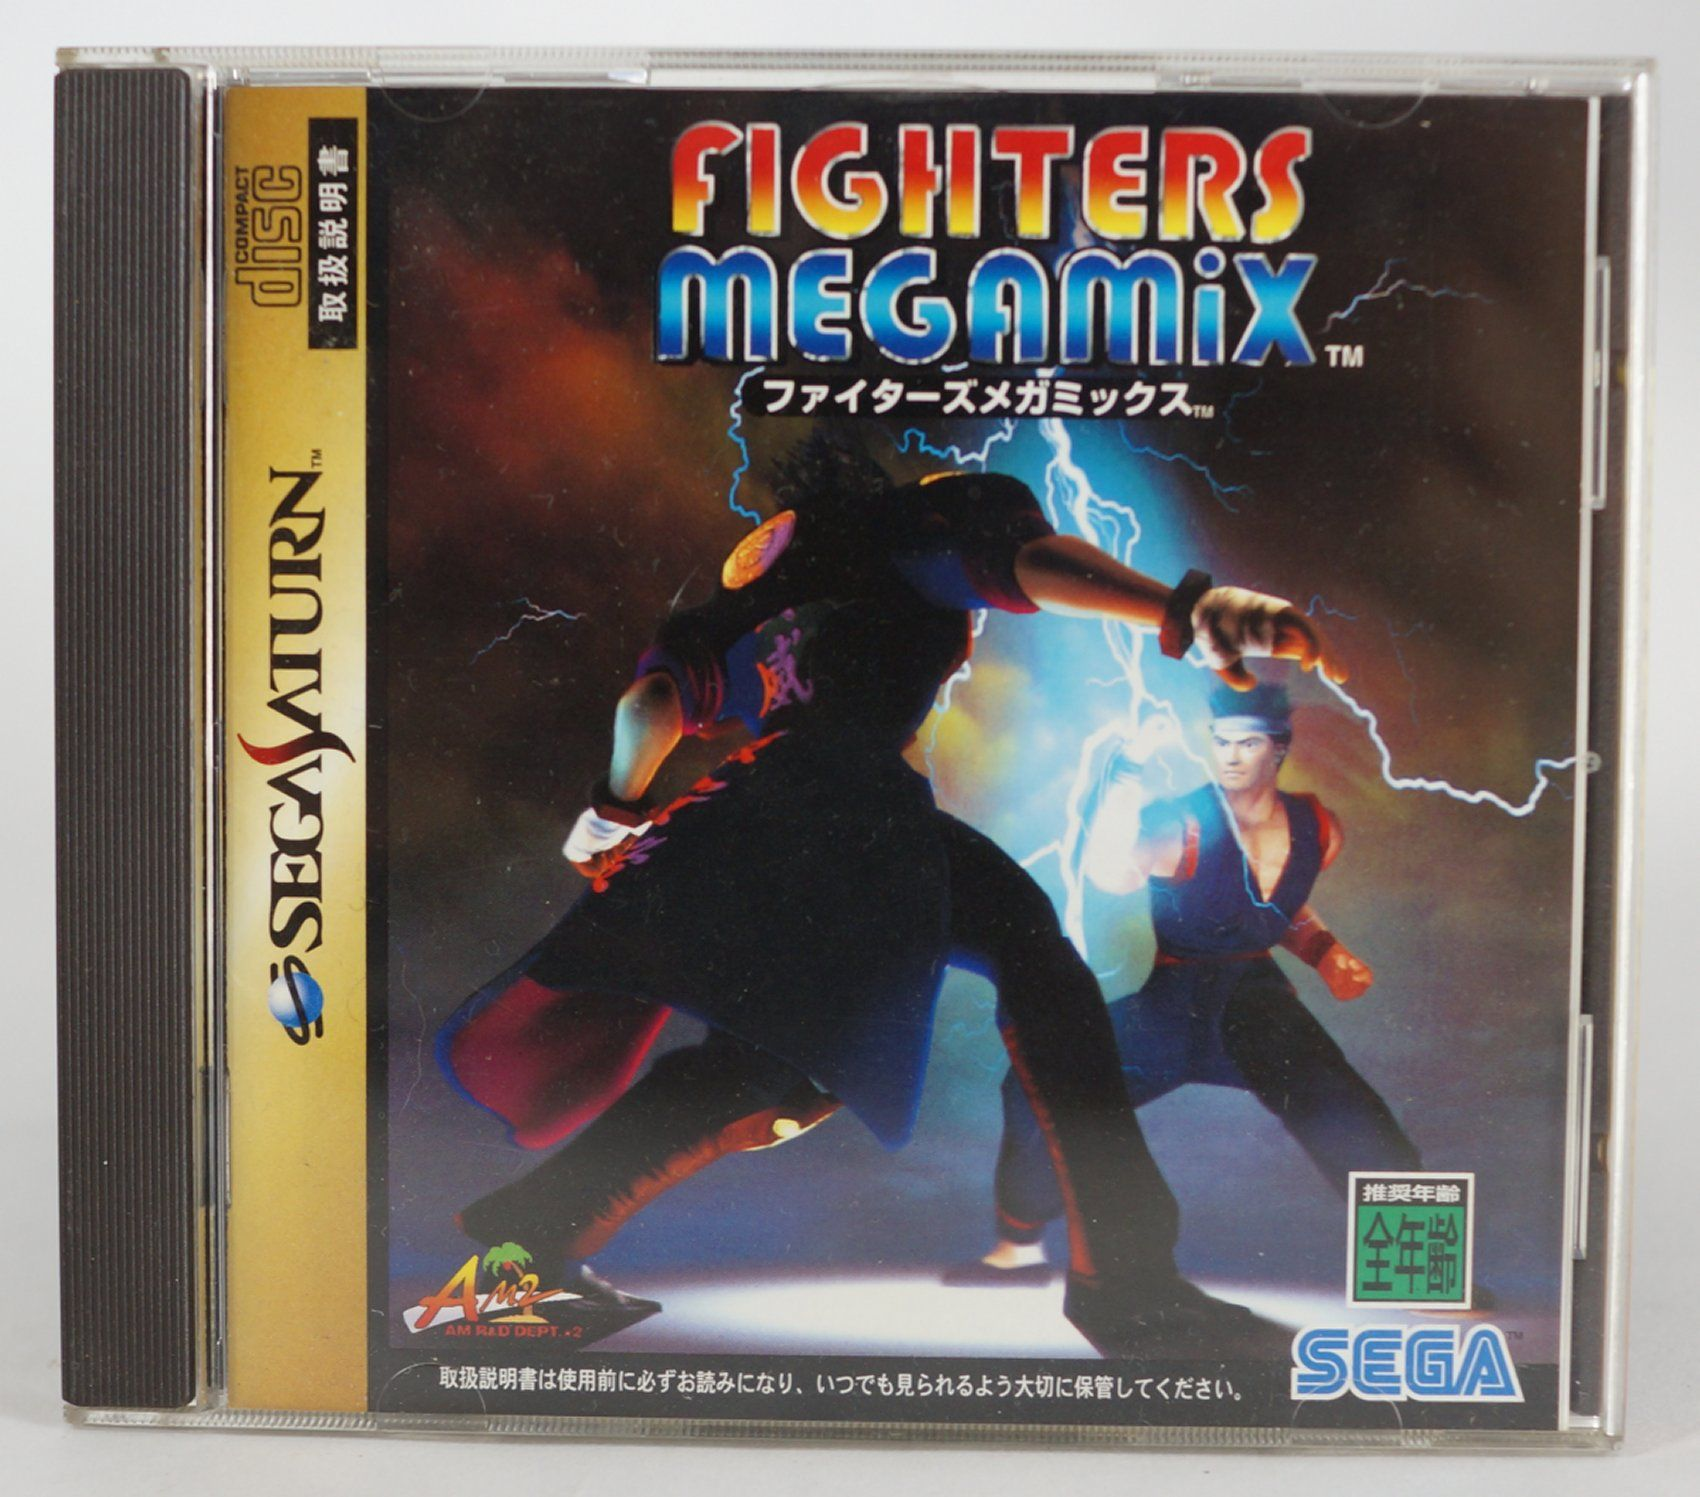 #Sega #Saturn Saturn Japan : Fighters Megamix GS-9126 http://www.japanstuff.biz/ CLICK THE FOLLOWING LINK TO BUY IT ( IF STILL AVAILABLE ) http://www.delcampe.net/page/item/id,0358871198,language,E.html